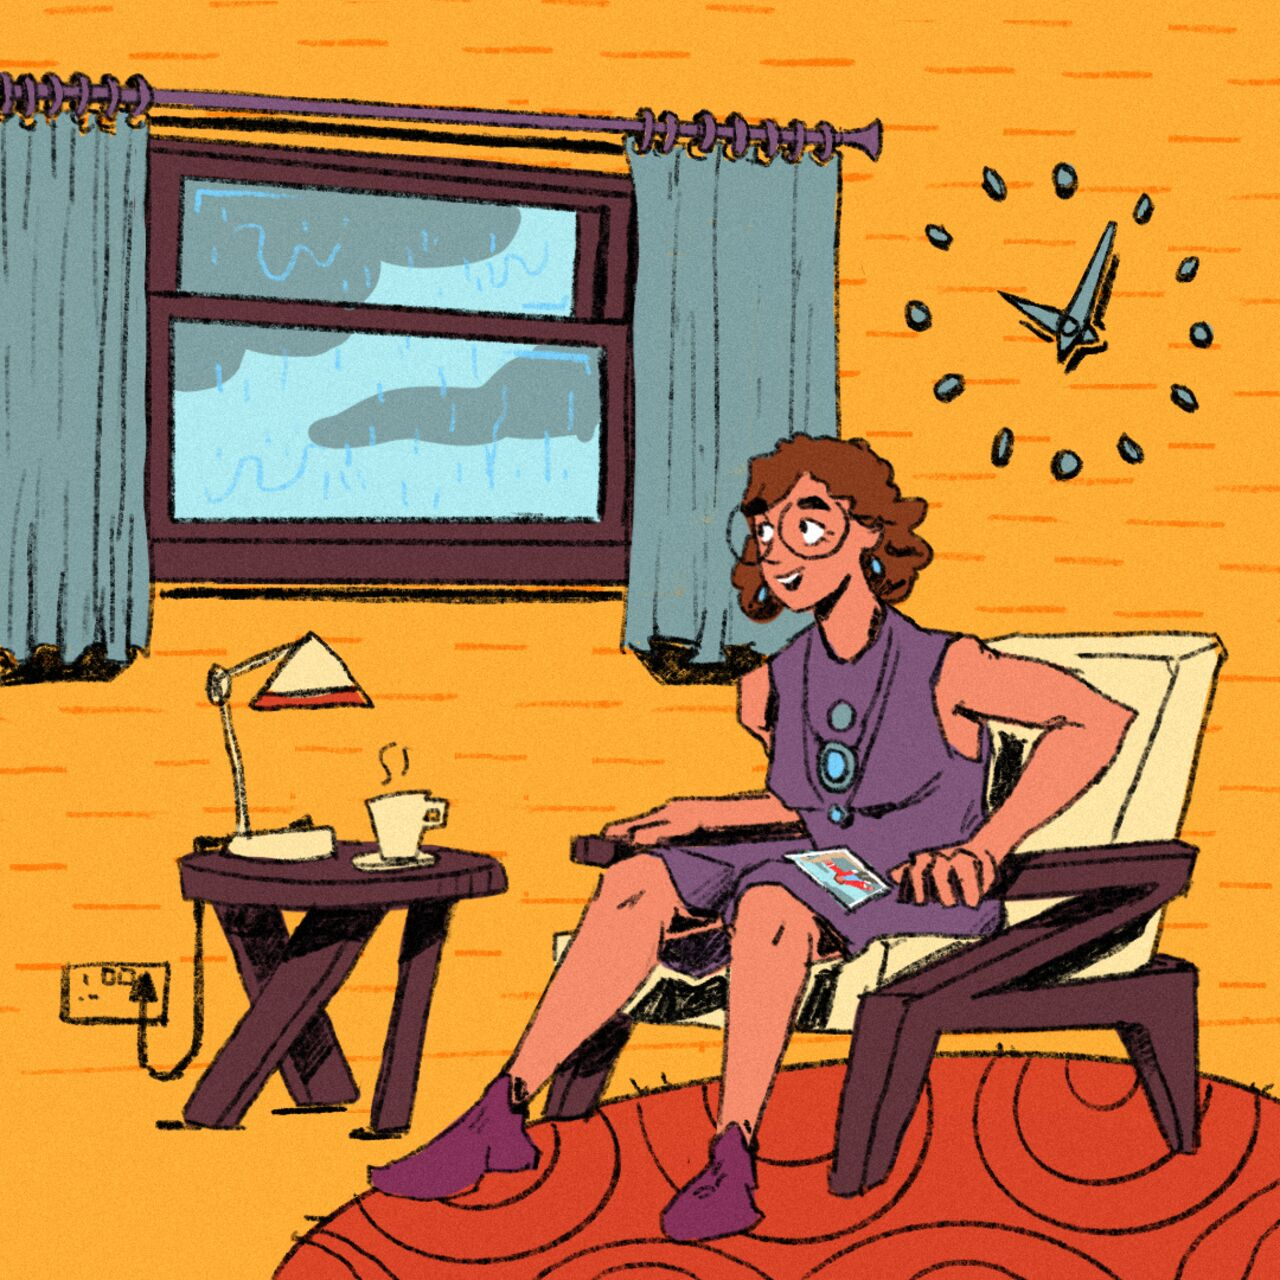 Bright and colourful illustration showing the same woman, older now, sitting in her chair looking out the window at the rain pouring down.